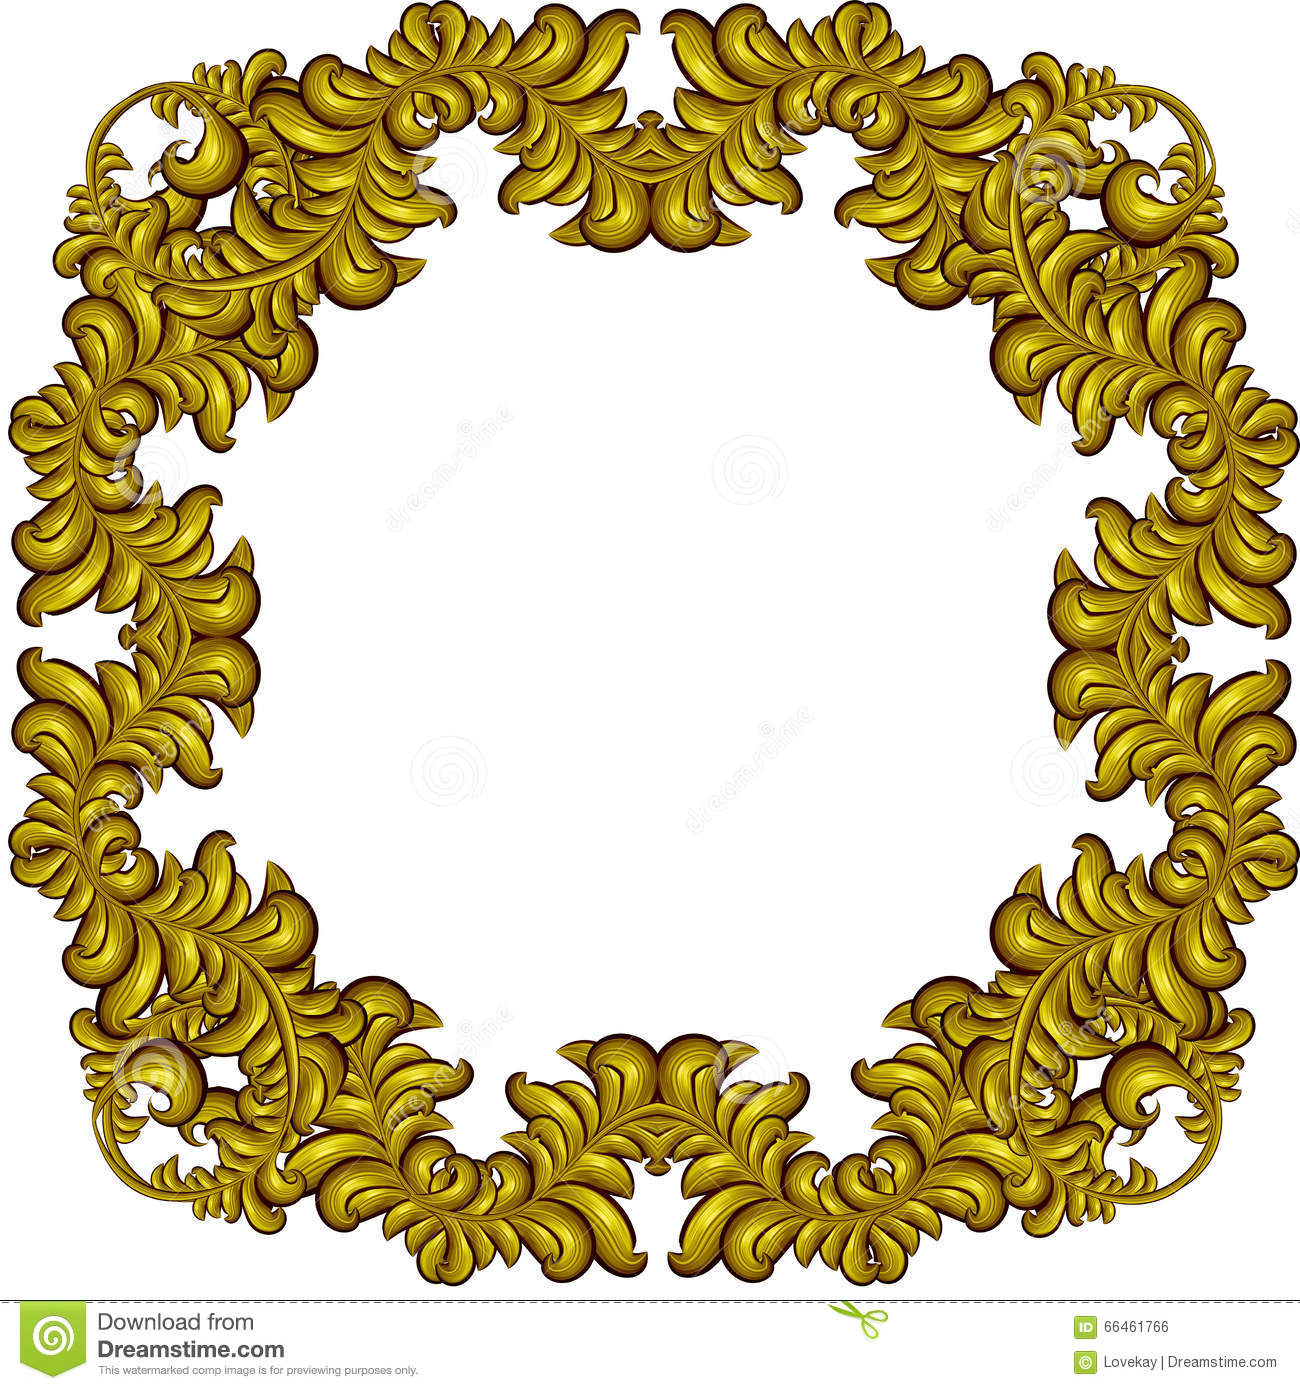 Golden frame with luxury floral elements baroque style for Baroque design elements